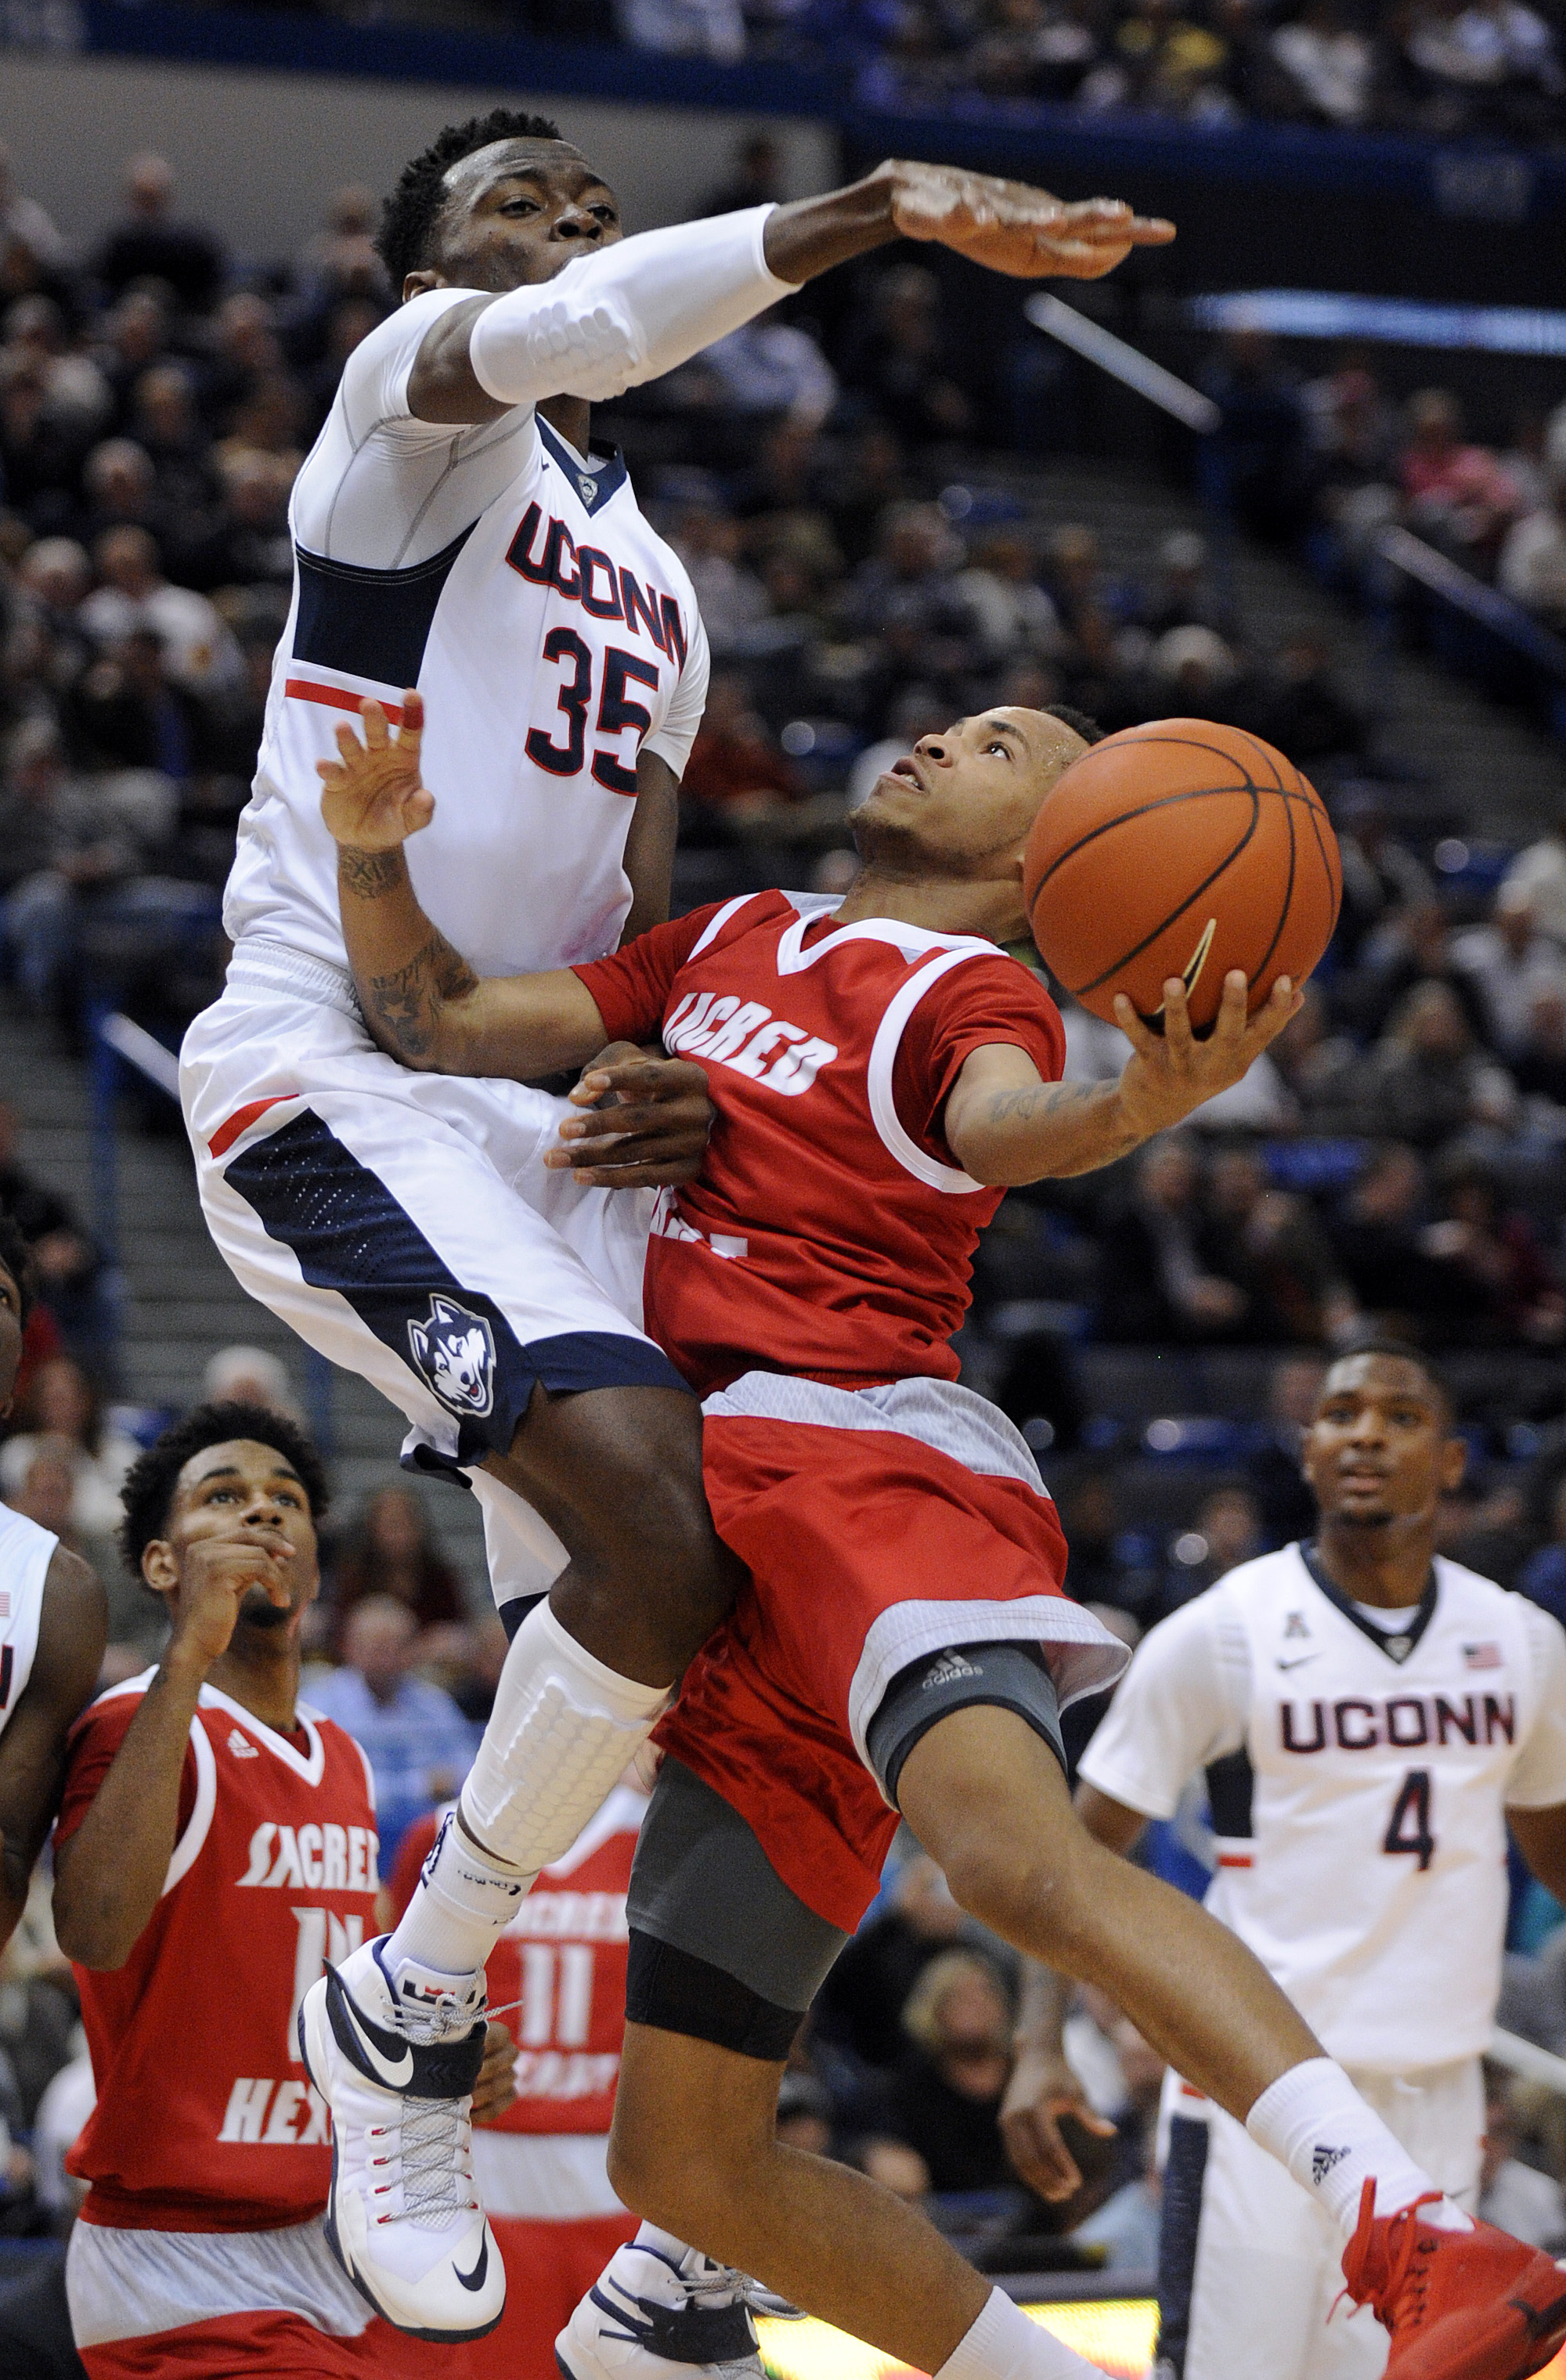 Connecticut's Amida Brimah (35) guards Sacred Heart's Cane Broome during the first half of an NCAA college basketball game in Hartford, Conn., on Wednesday, Dec. 2, 2015. (AP Photo/Fred Beckham)